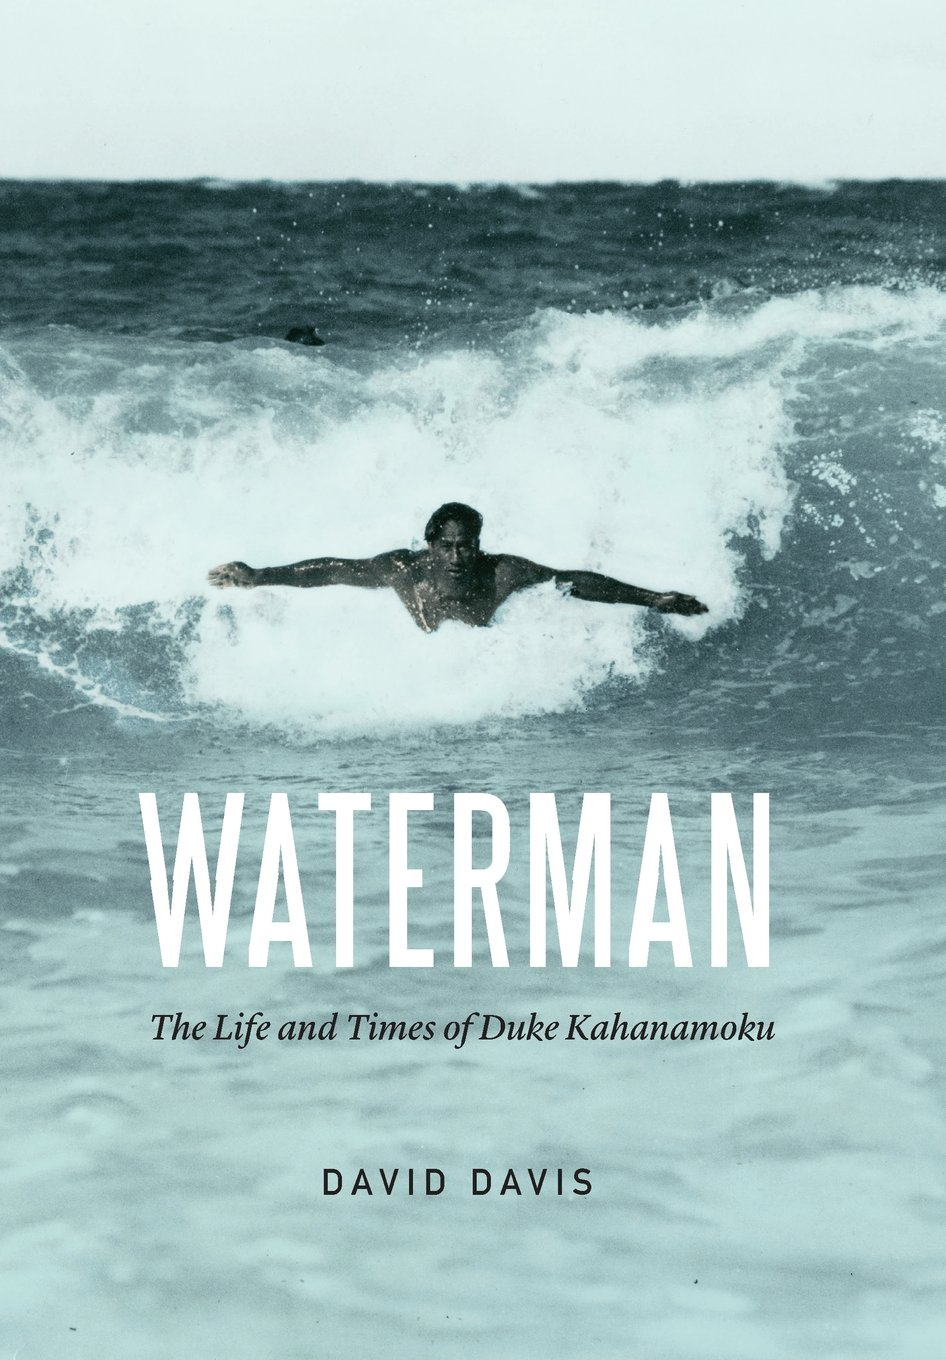 Before Micheal Phelps, there was 'The Duke' - the unlikely Olympic swimming hero who popularized modern surfing. In Waterman, award-winning journalist David Davis examines his remarkable life. -